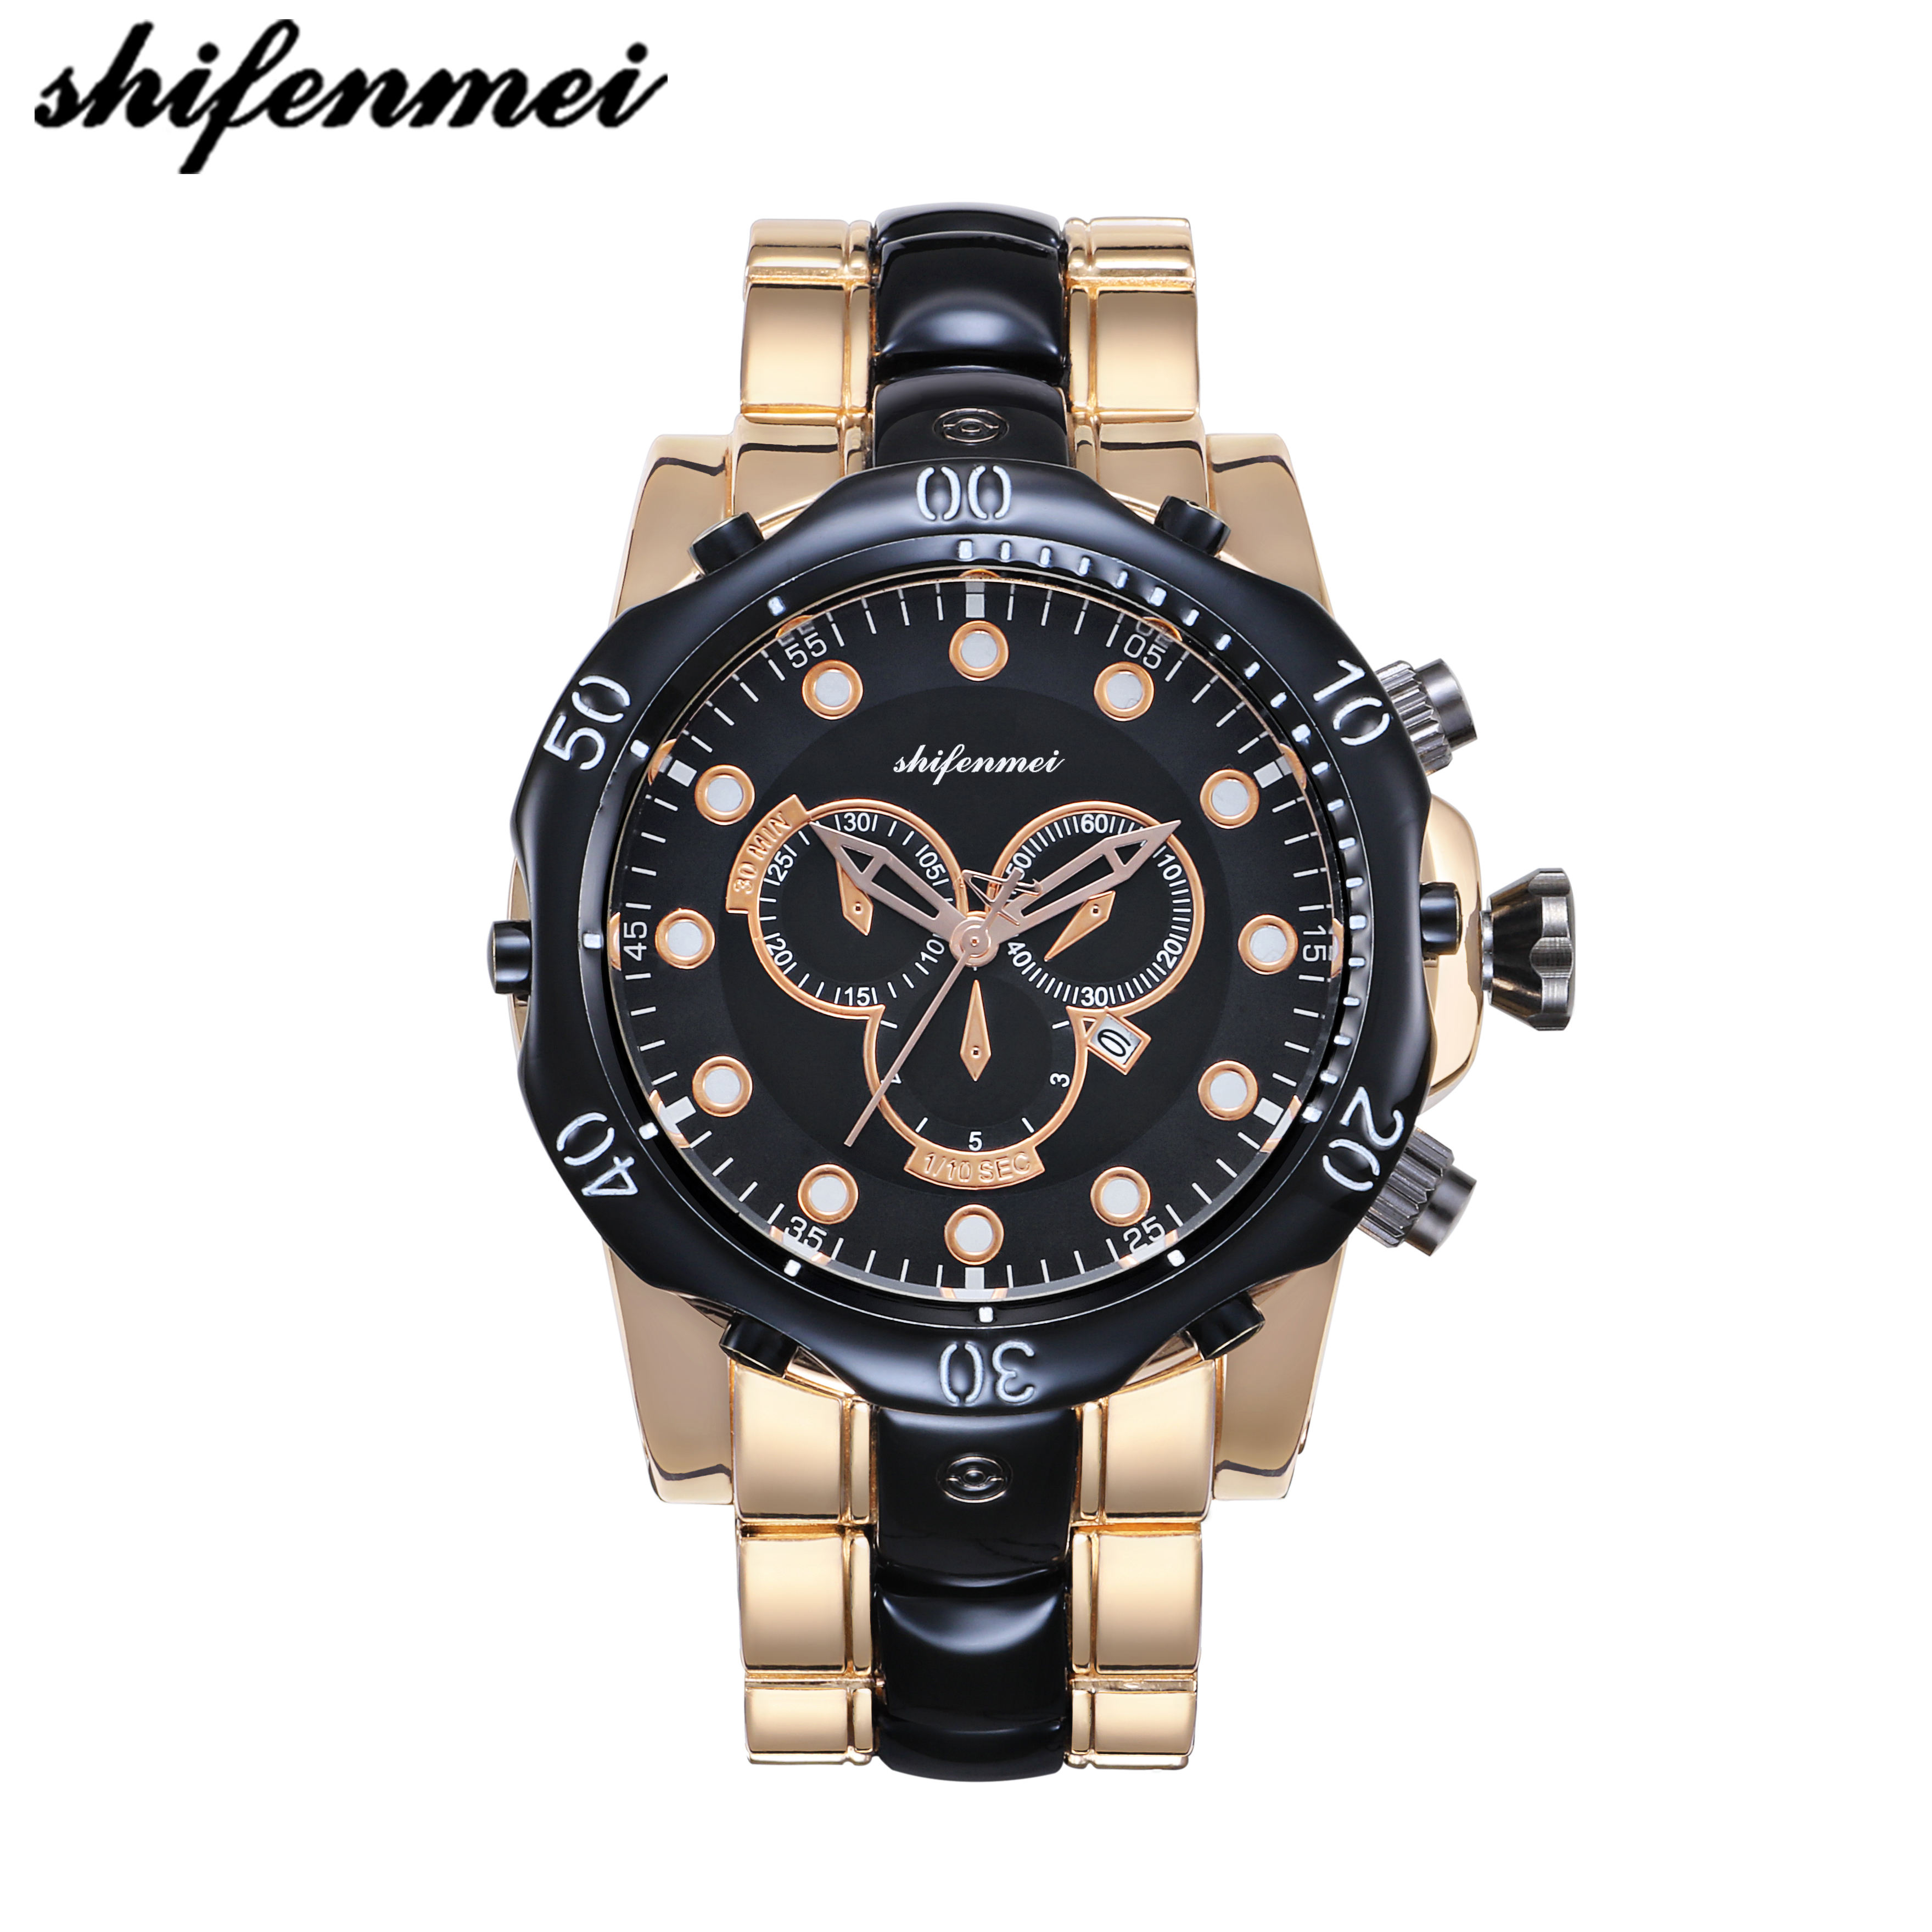 shifenmei S1072 watch custom luxury men's hot Shifenmei S 1072 charm quartz men watch